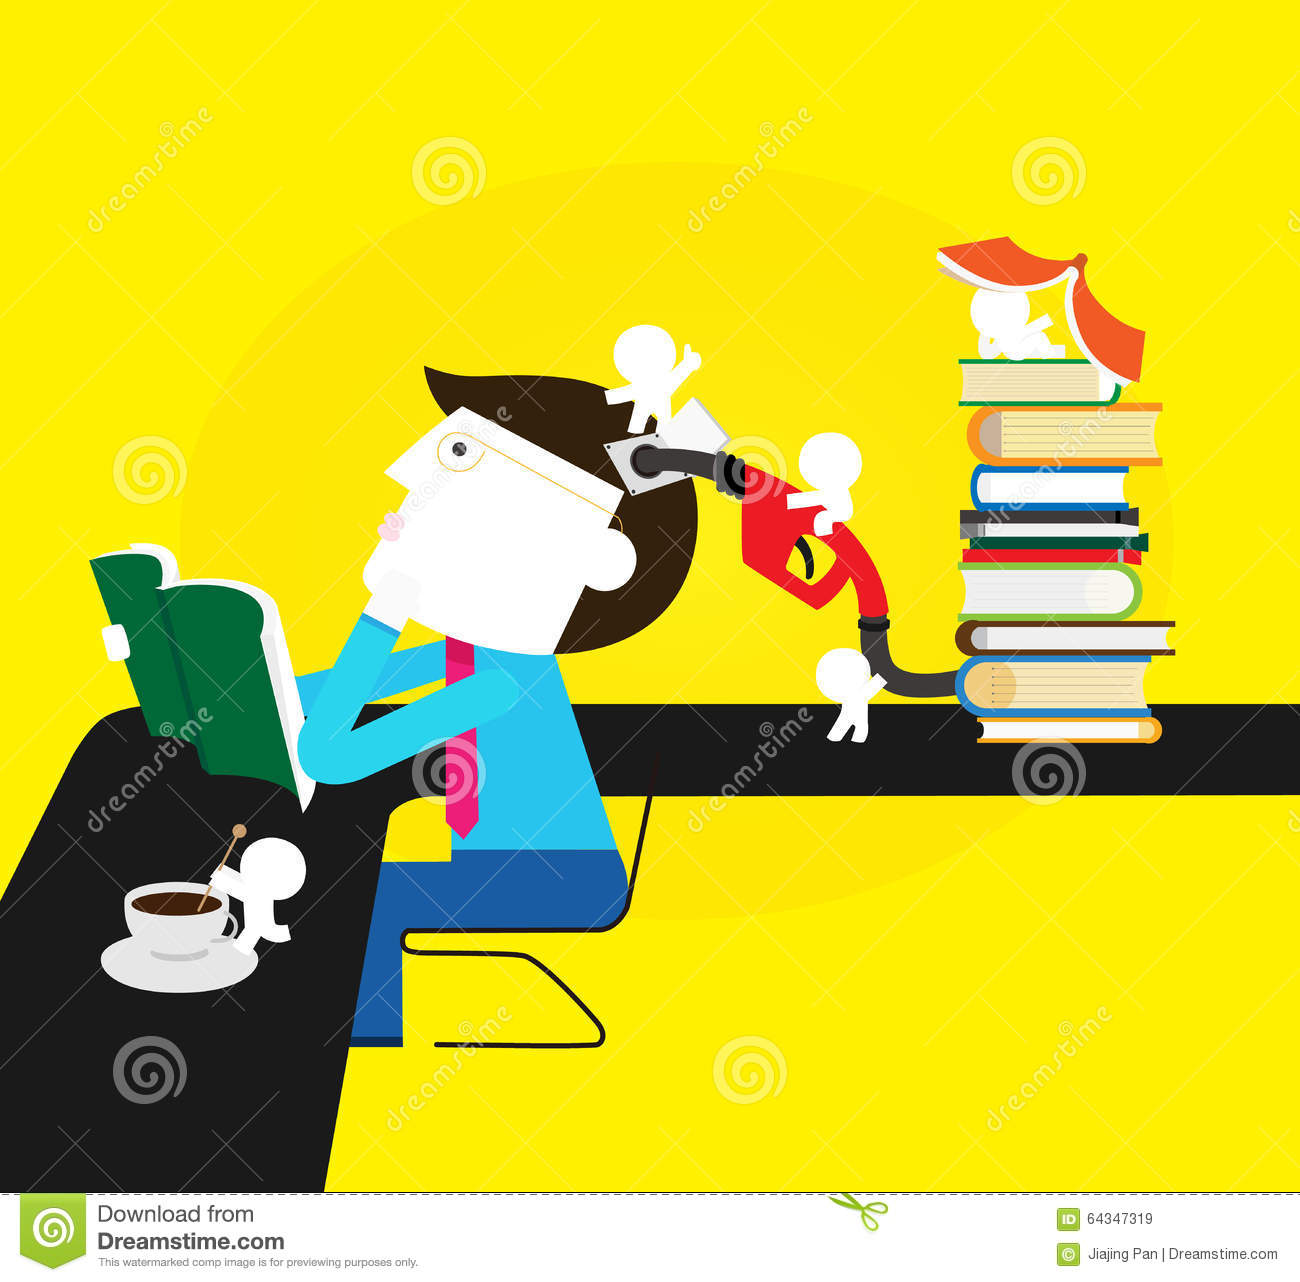 Enrich Your Knowledge Stock Illustration - Image: 64347319